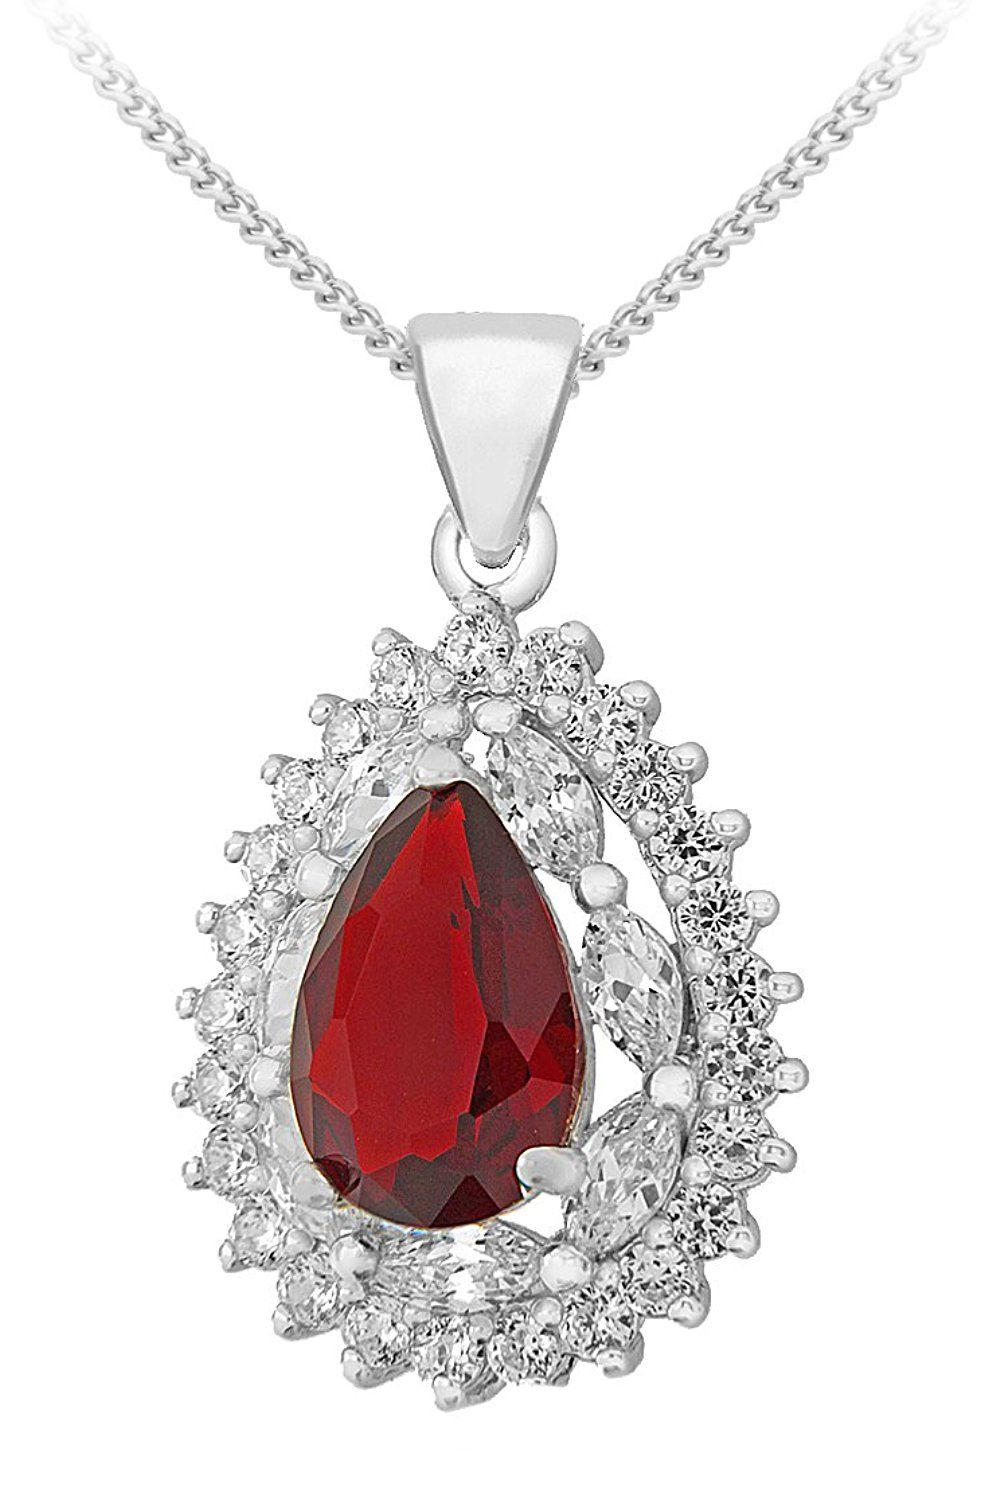 Tuscany Silver Sterling Red And White Cubic Zirconia Cer Teardrop Pendant On Chain Necklace Of